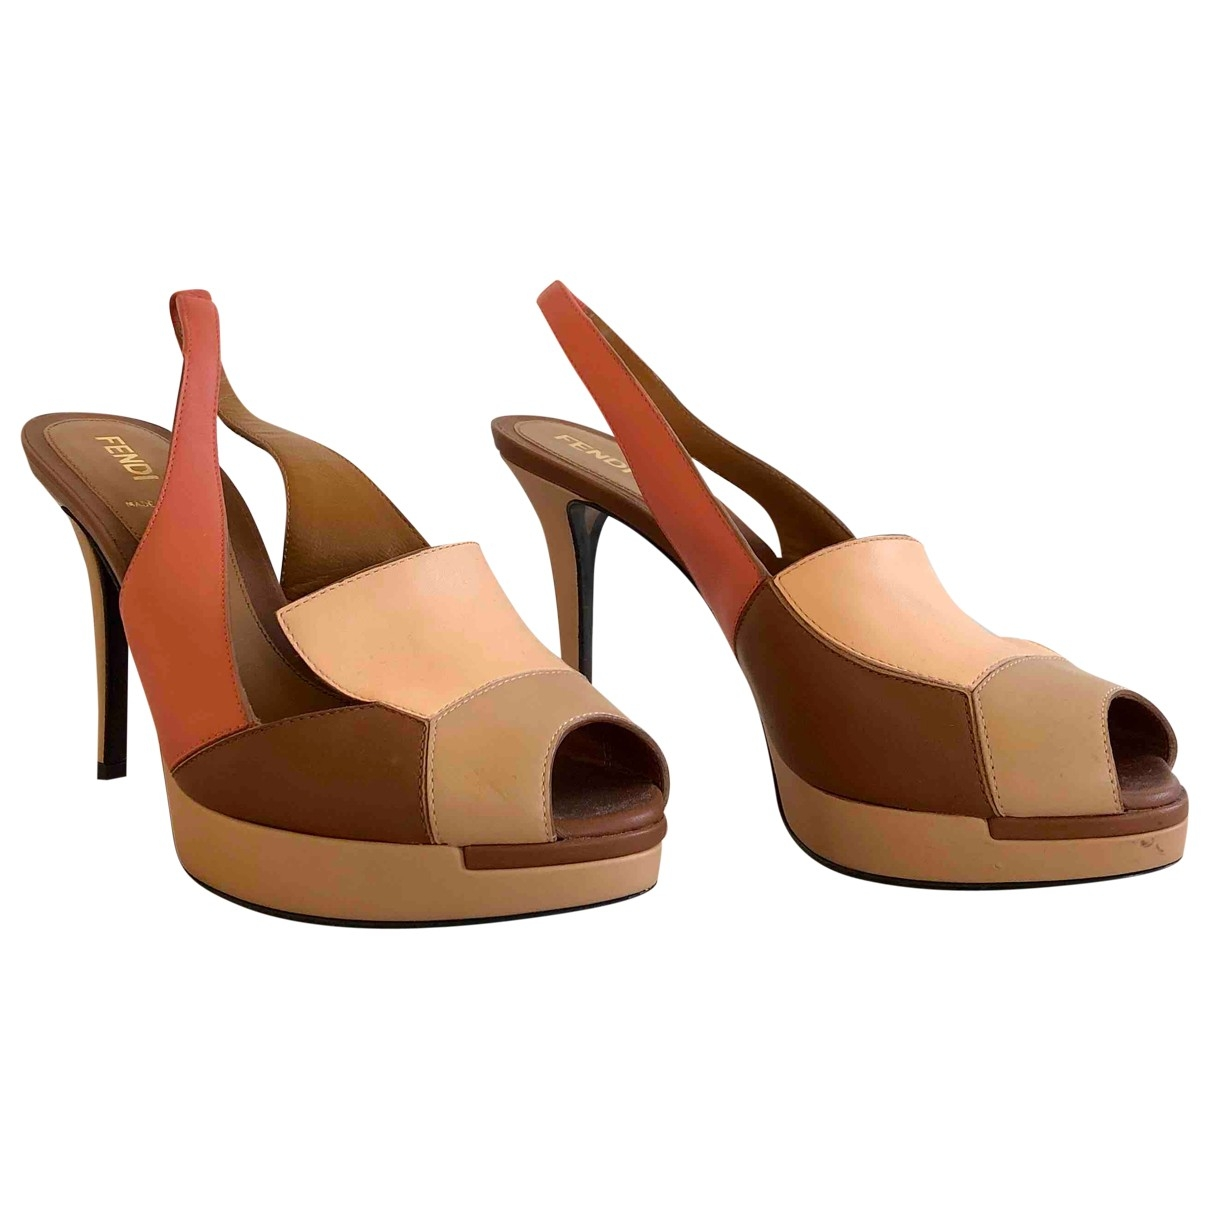 Fendi \N Beige Leather Heels for Women 36 EU